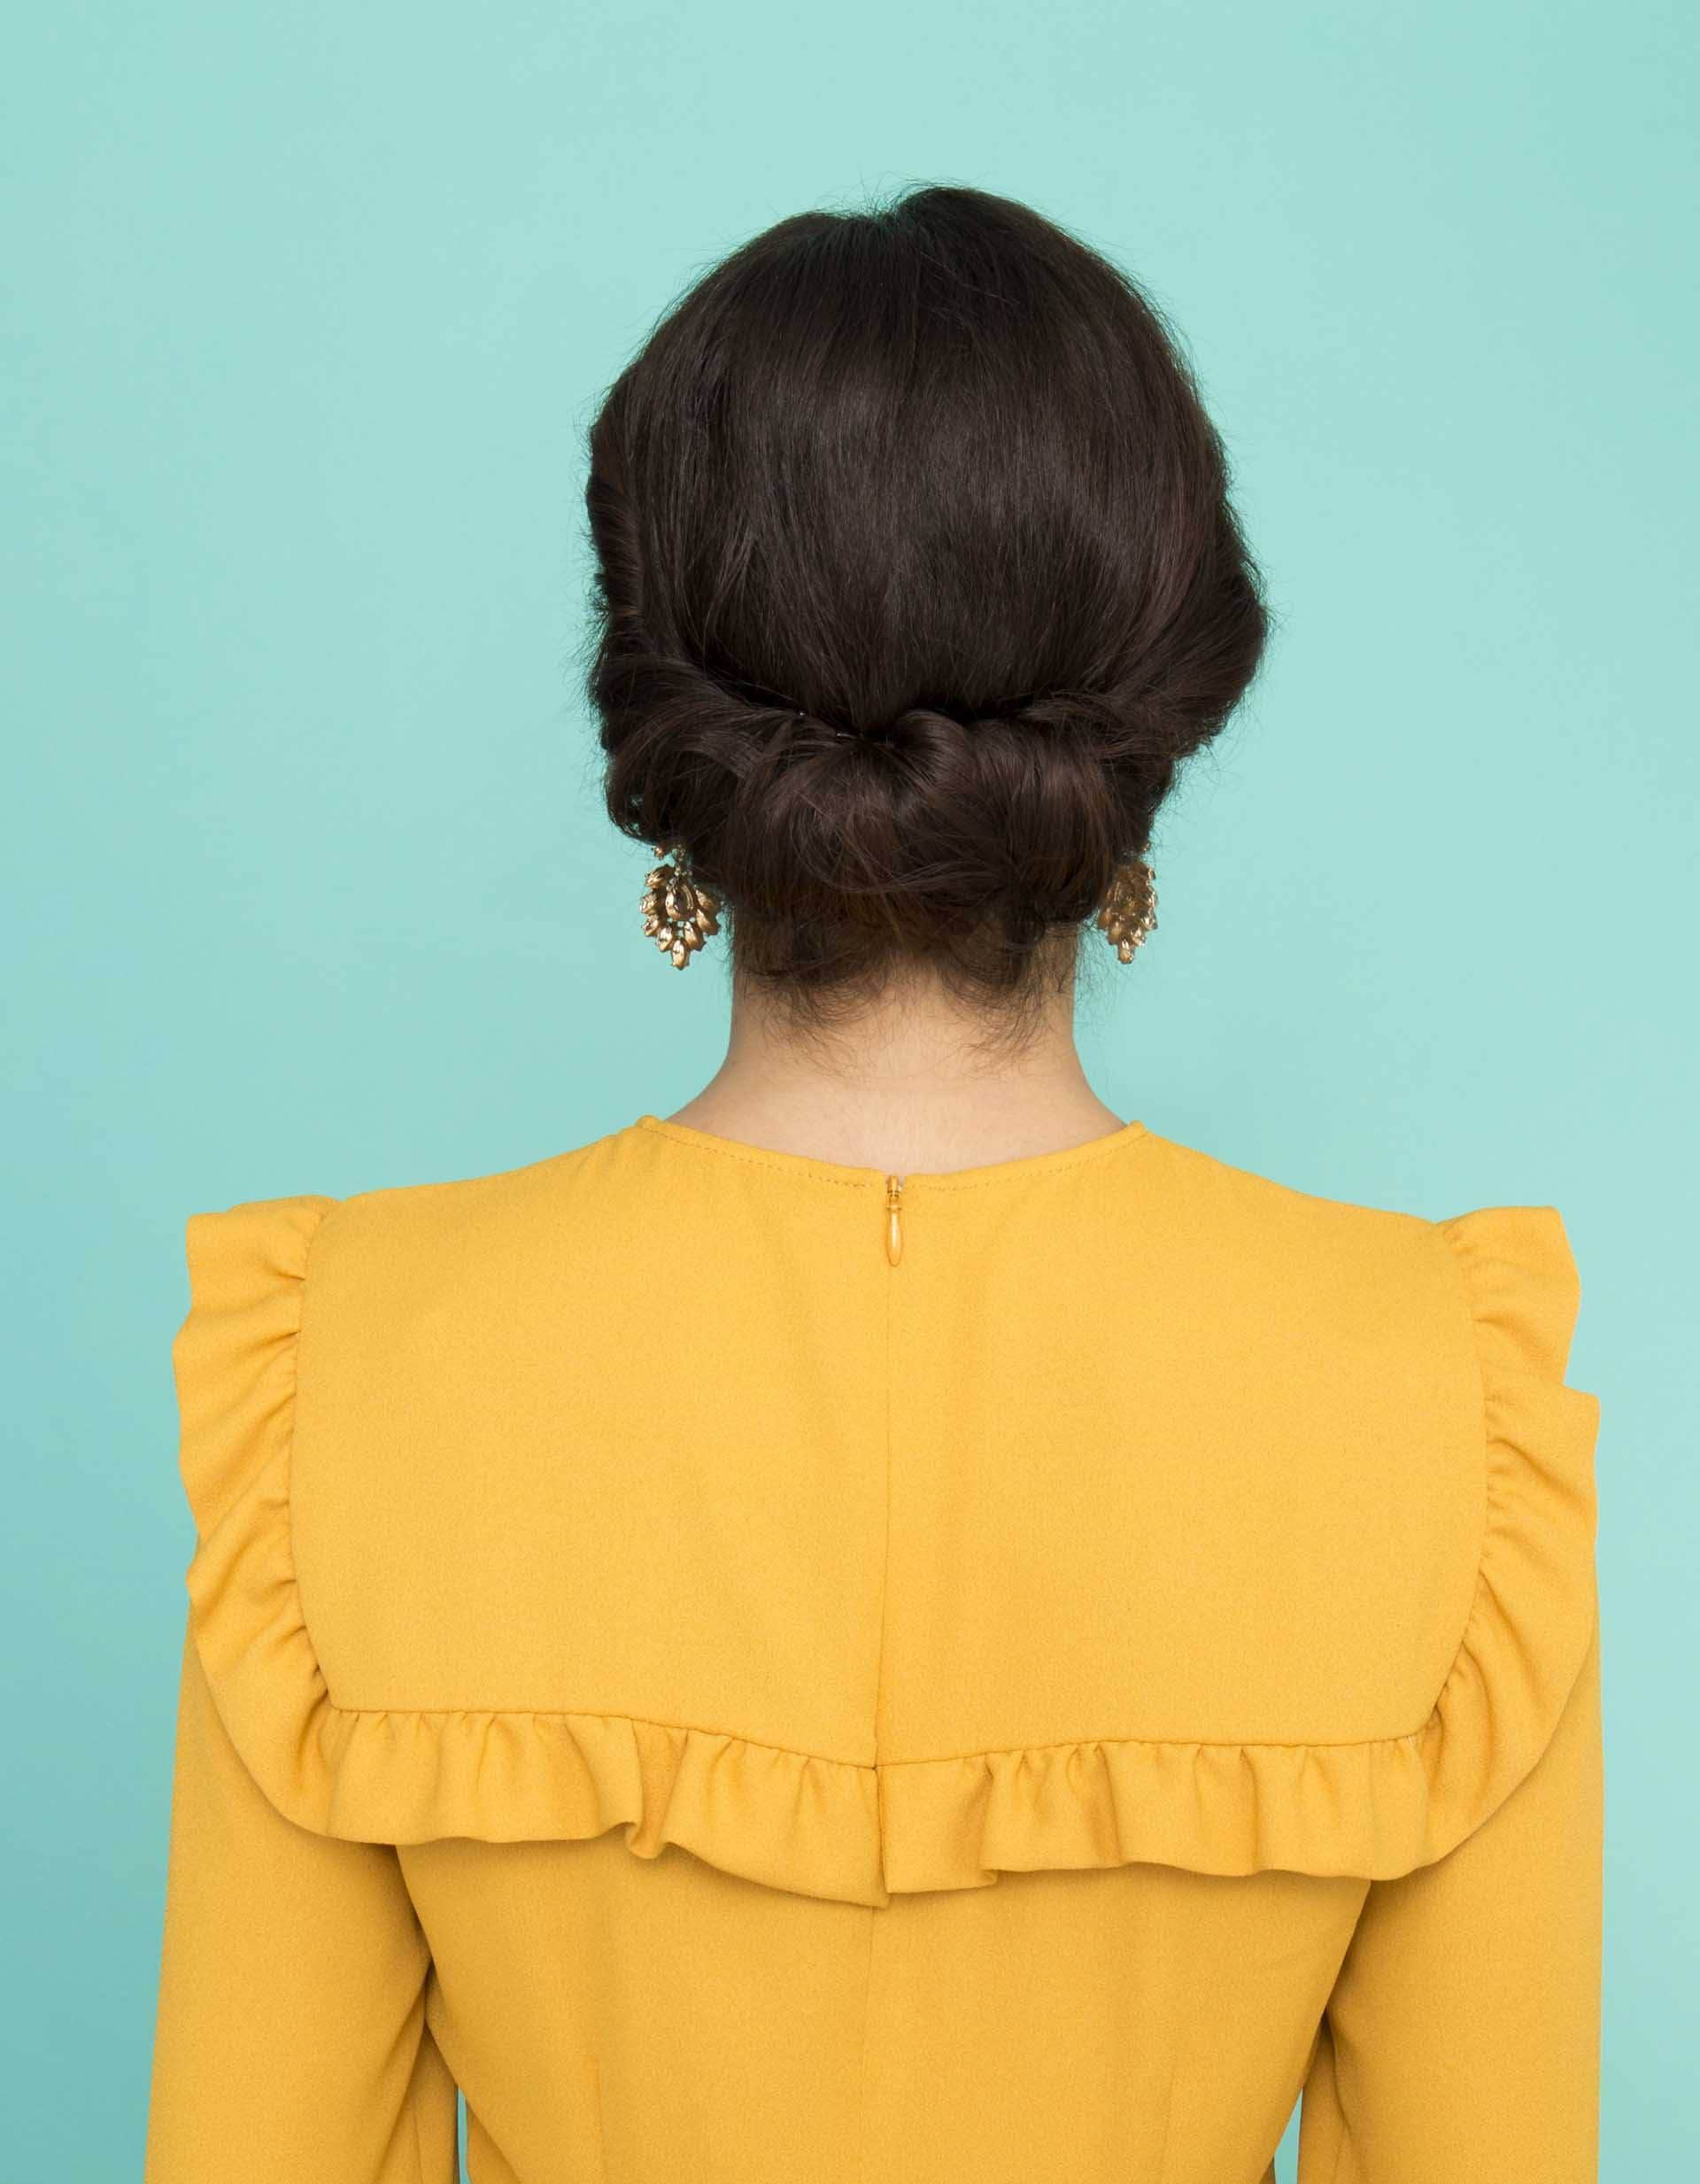 Simple updo ideas you can wear to prom. The gibson tuck.